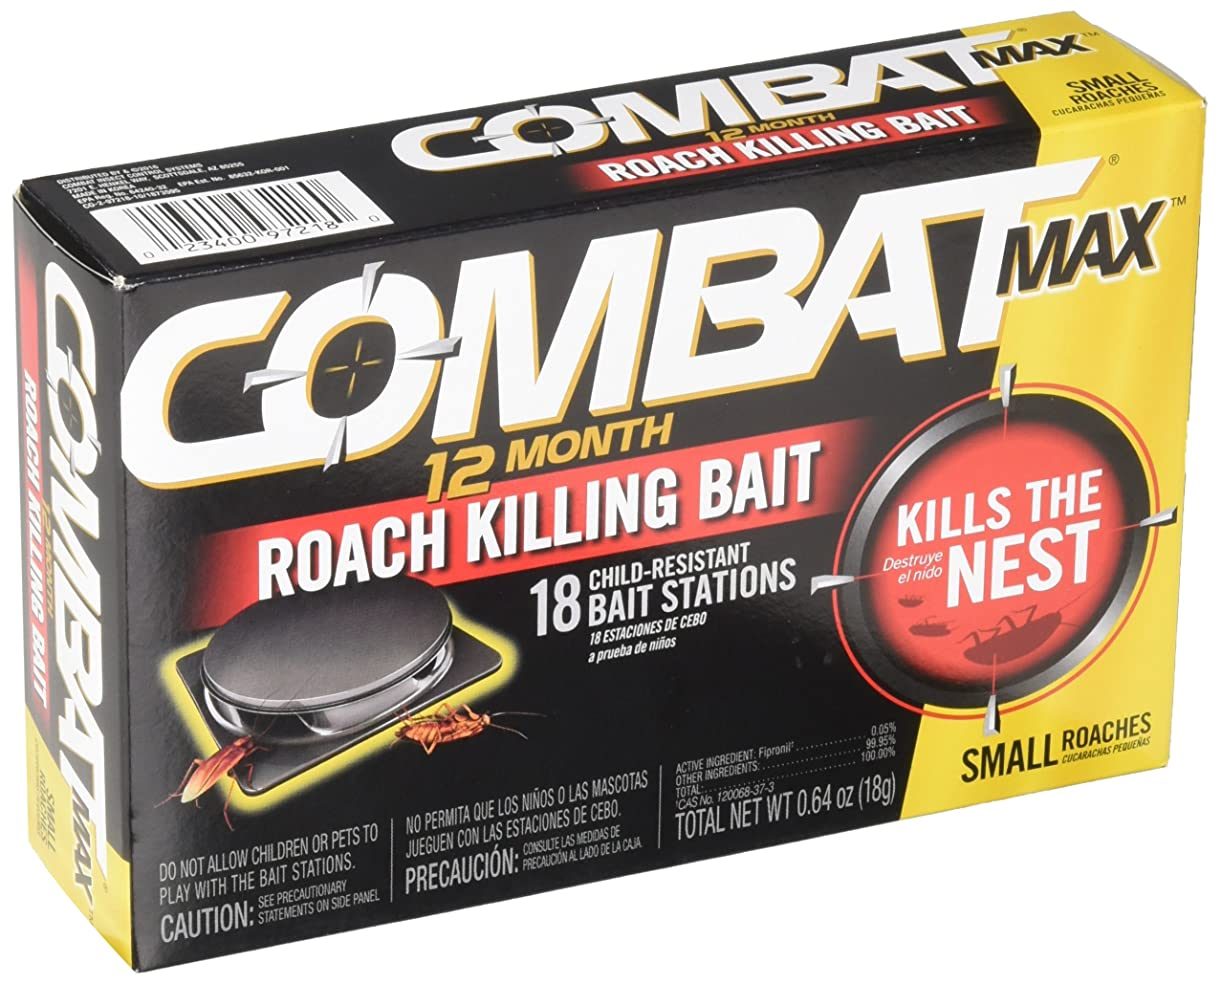 Combat Max 12 Month Roach Killing Bait, Small Roach Bait Station, 18 Count pvomy2419